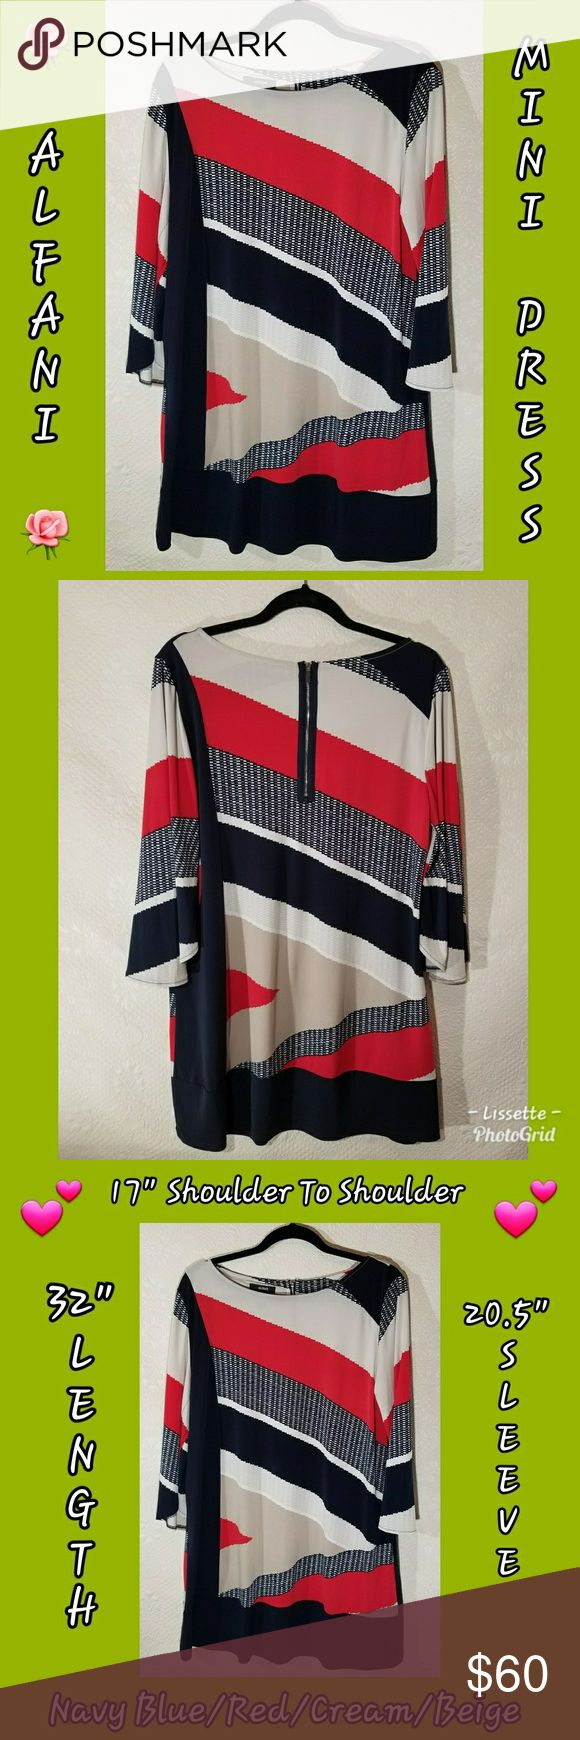 """💚Alfani Multi Color Mini Dress💚 💕Alfani Multi Color Mini Dress💕 Blue/Red/Beige/Cream 💕 Falls Beautifully & Is So Soft 😘 Like New!!! In Most Cases Will Ship Same Day 📮📬📦 """"FAST SHIPPER"""" I Love Sharing YOUR Closet & Helping In Any Way I Can 😘 """"POSH MENTOR"""" I Will Personalize Your Package With 💙 & Care """"TOP 10% SHARER"""" """"TOP RATED SELLER"""" Happy Poshing Beauties 🎉👗💄👠👕👖👔 Alfani Dresses Mini"""